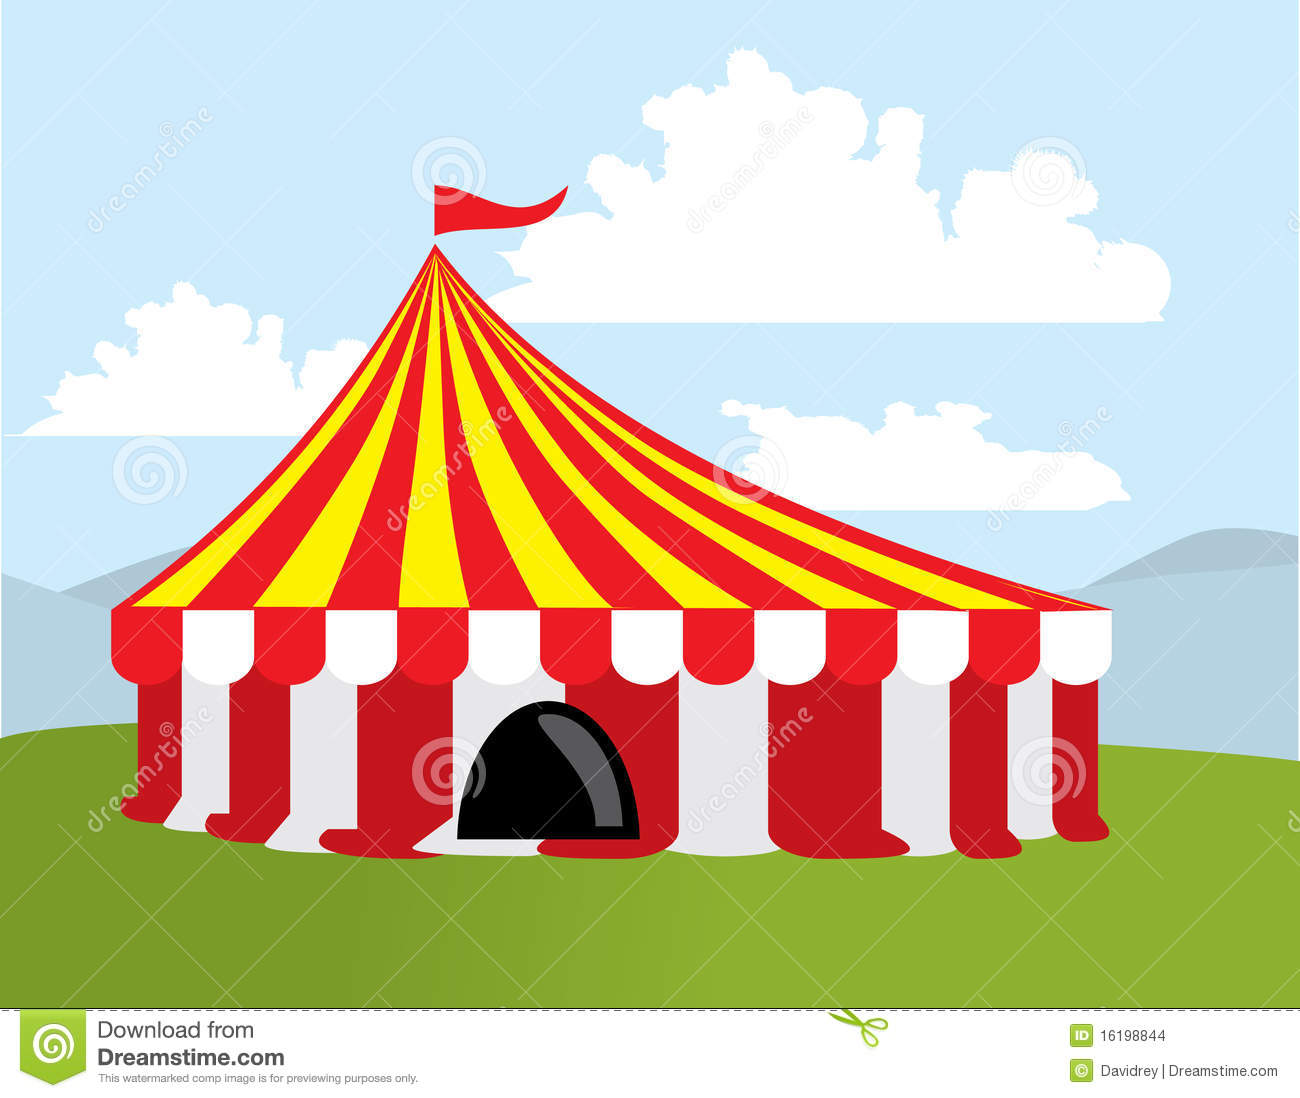 Color circus tent & Color circus tent stock vector. Illustration of clip - 16198844